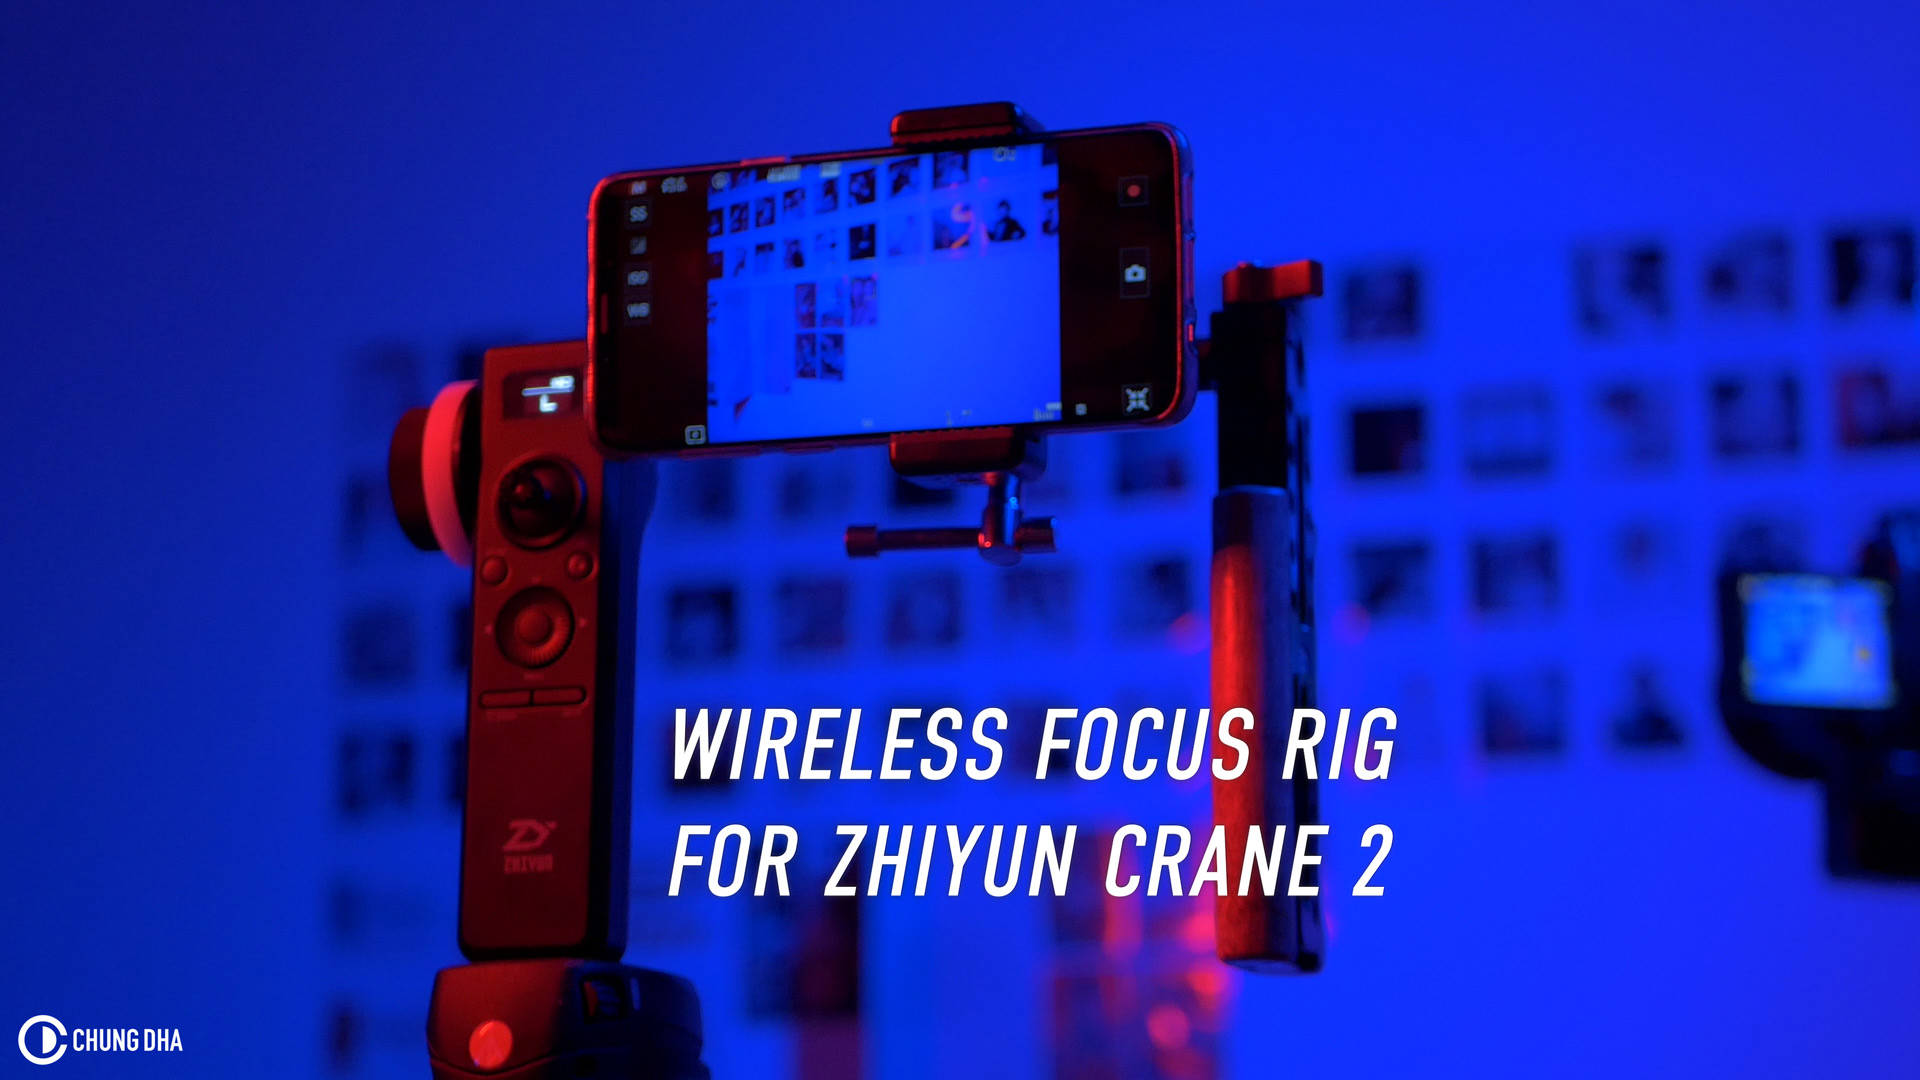 DIY Wireless Focus Rig for Zhiyun Crane 2 #zhiyuncrane2 #followfocus #diy #diymonday